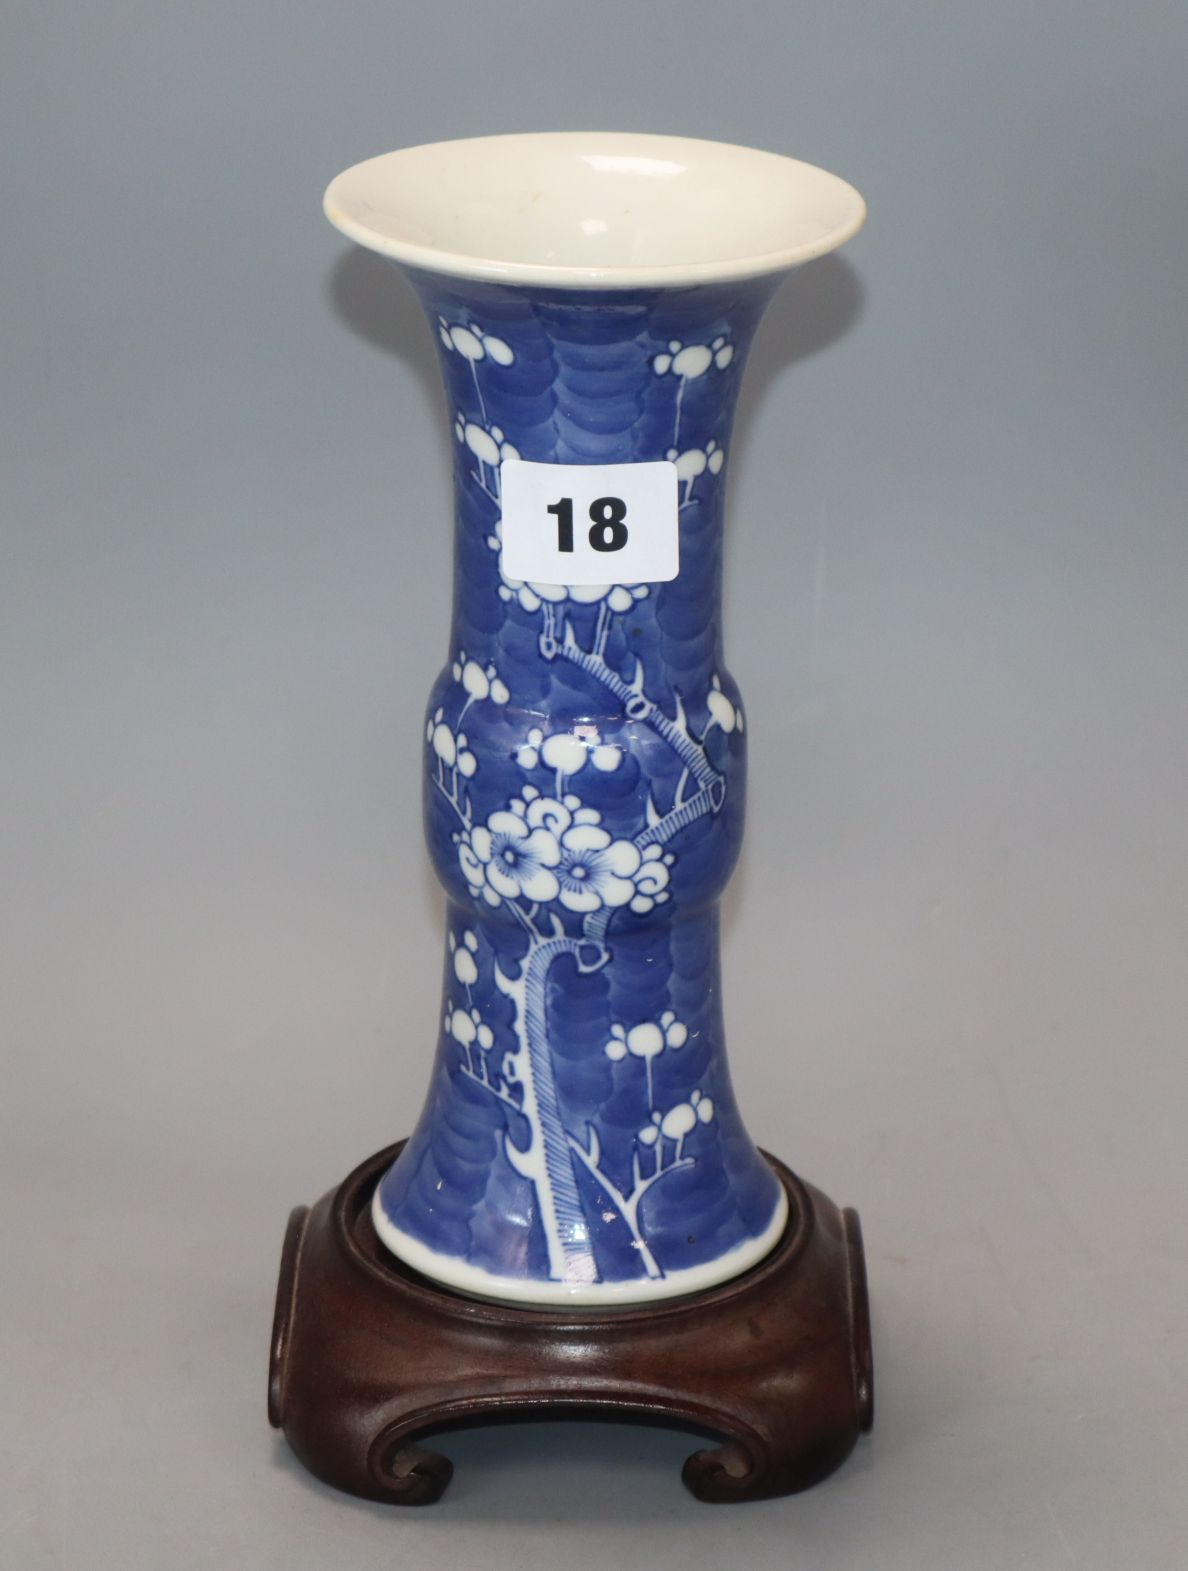 Lot 18 - A Chinese blue and white 'prunus' beaker vase, 19th century, wood stand height 20cm excluding